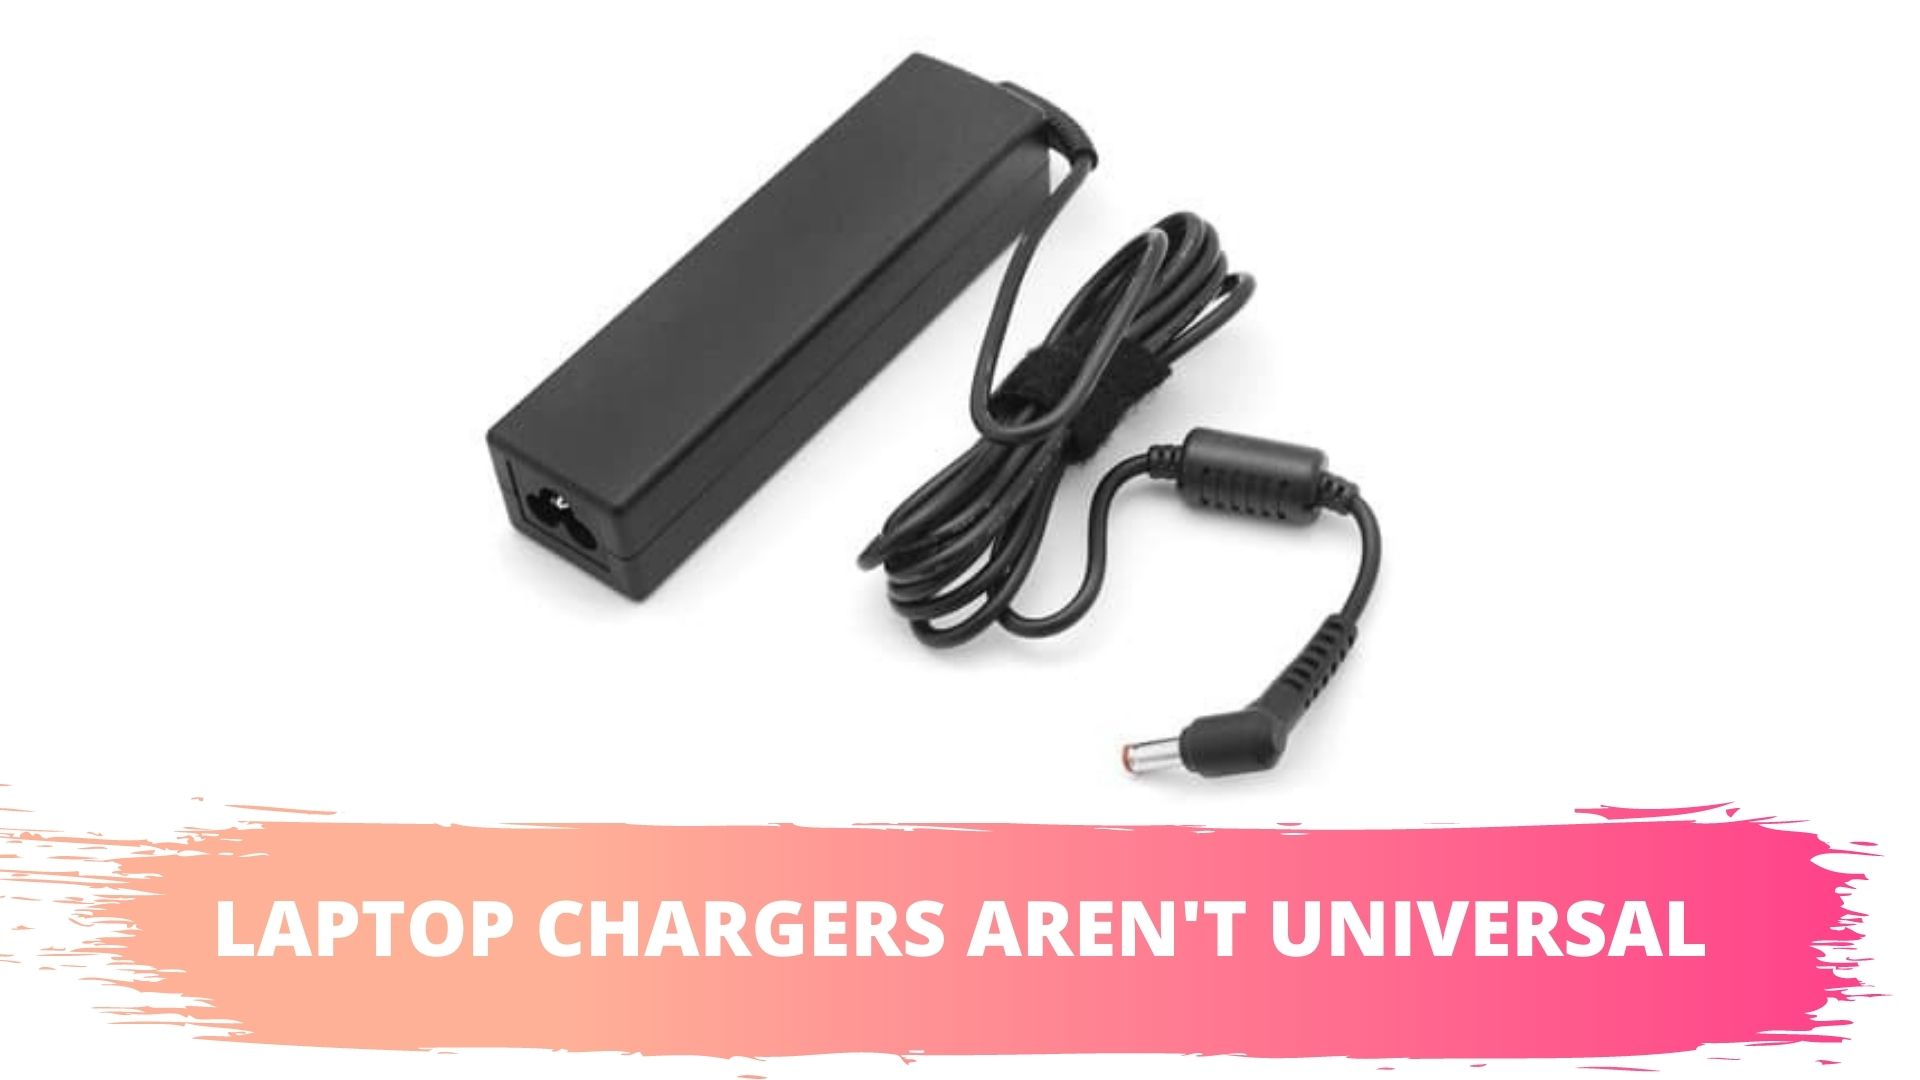 hp laptop chargers aren't universal